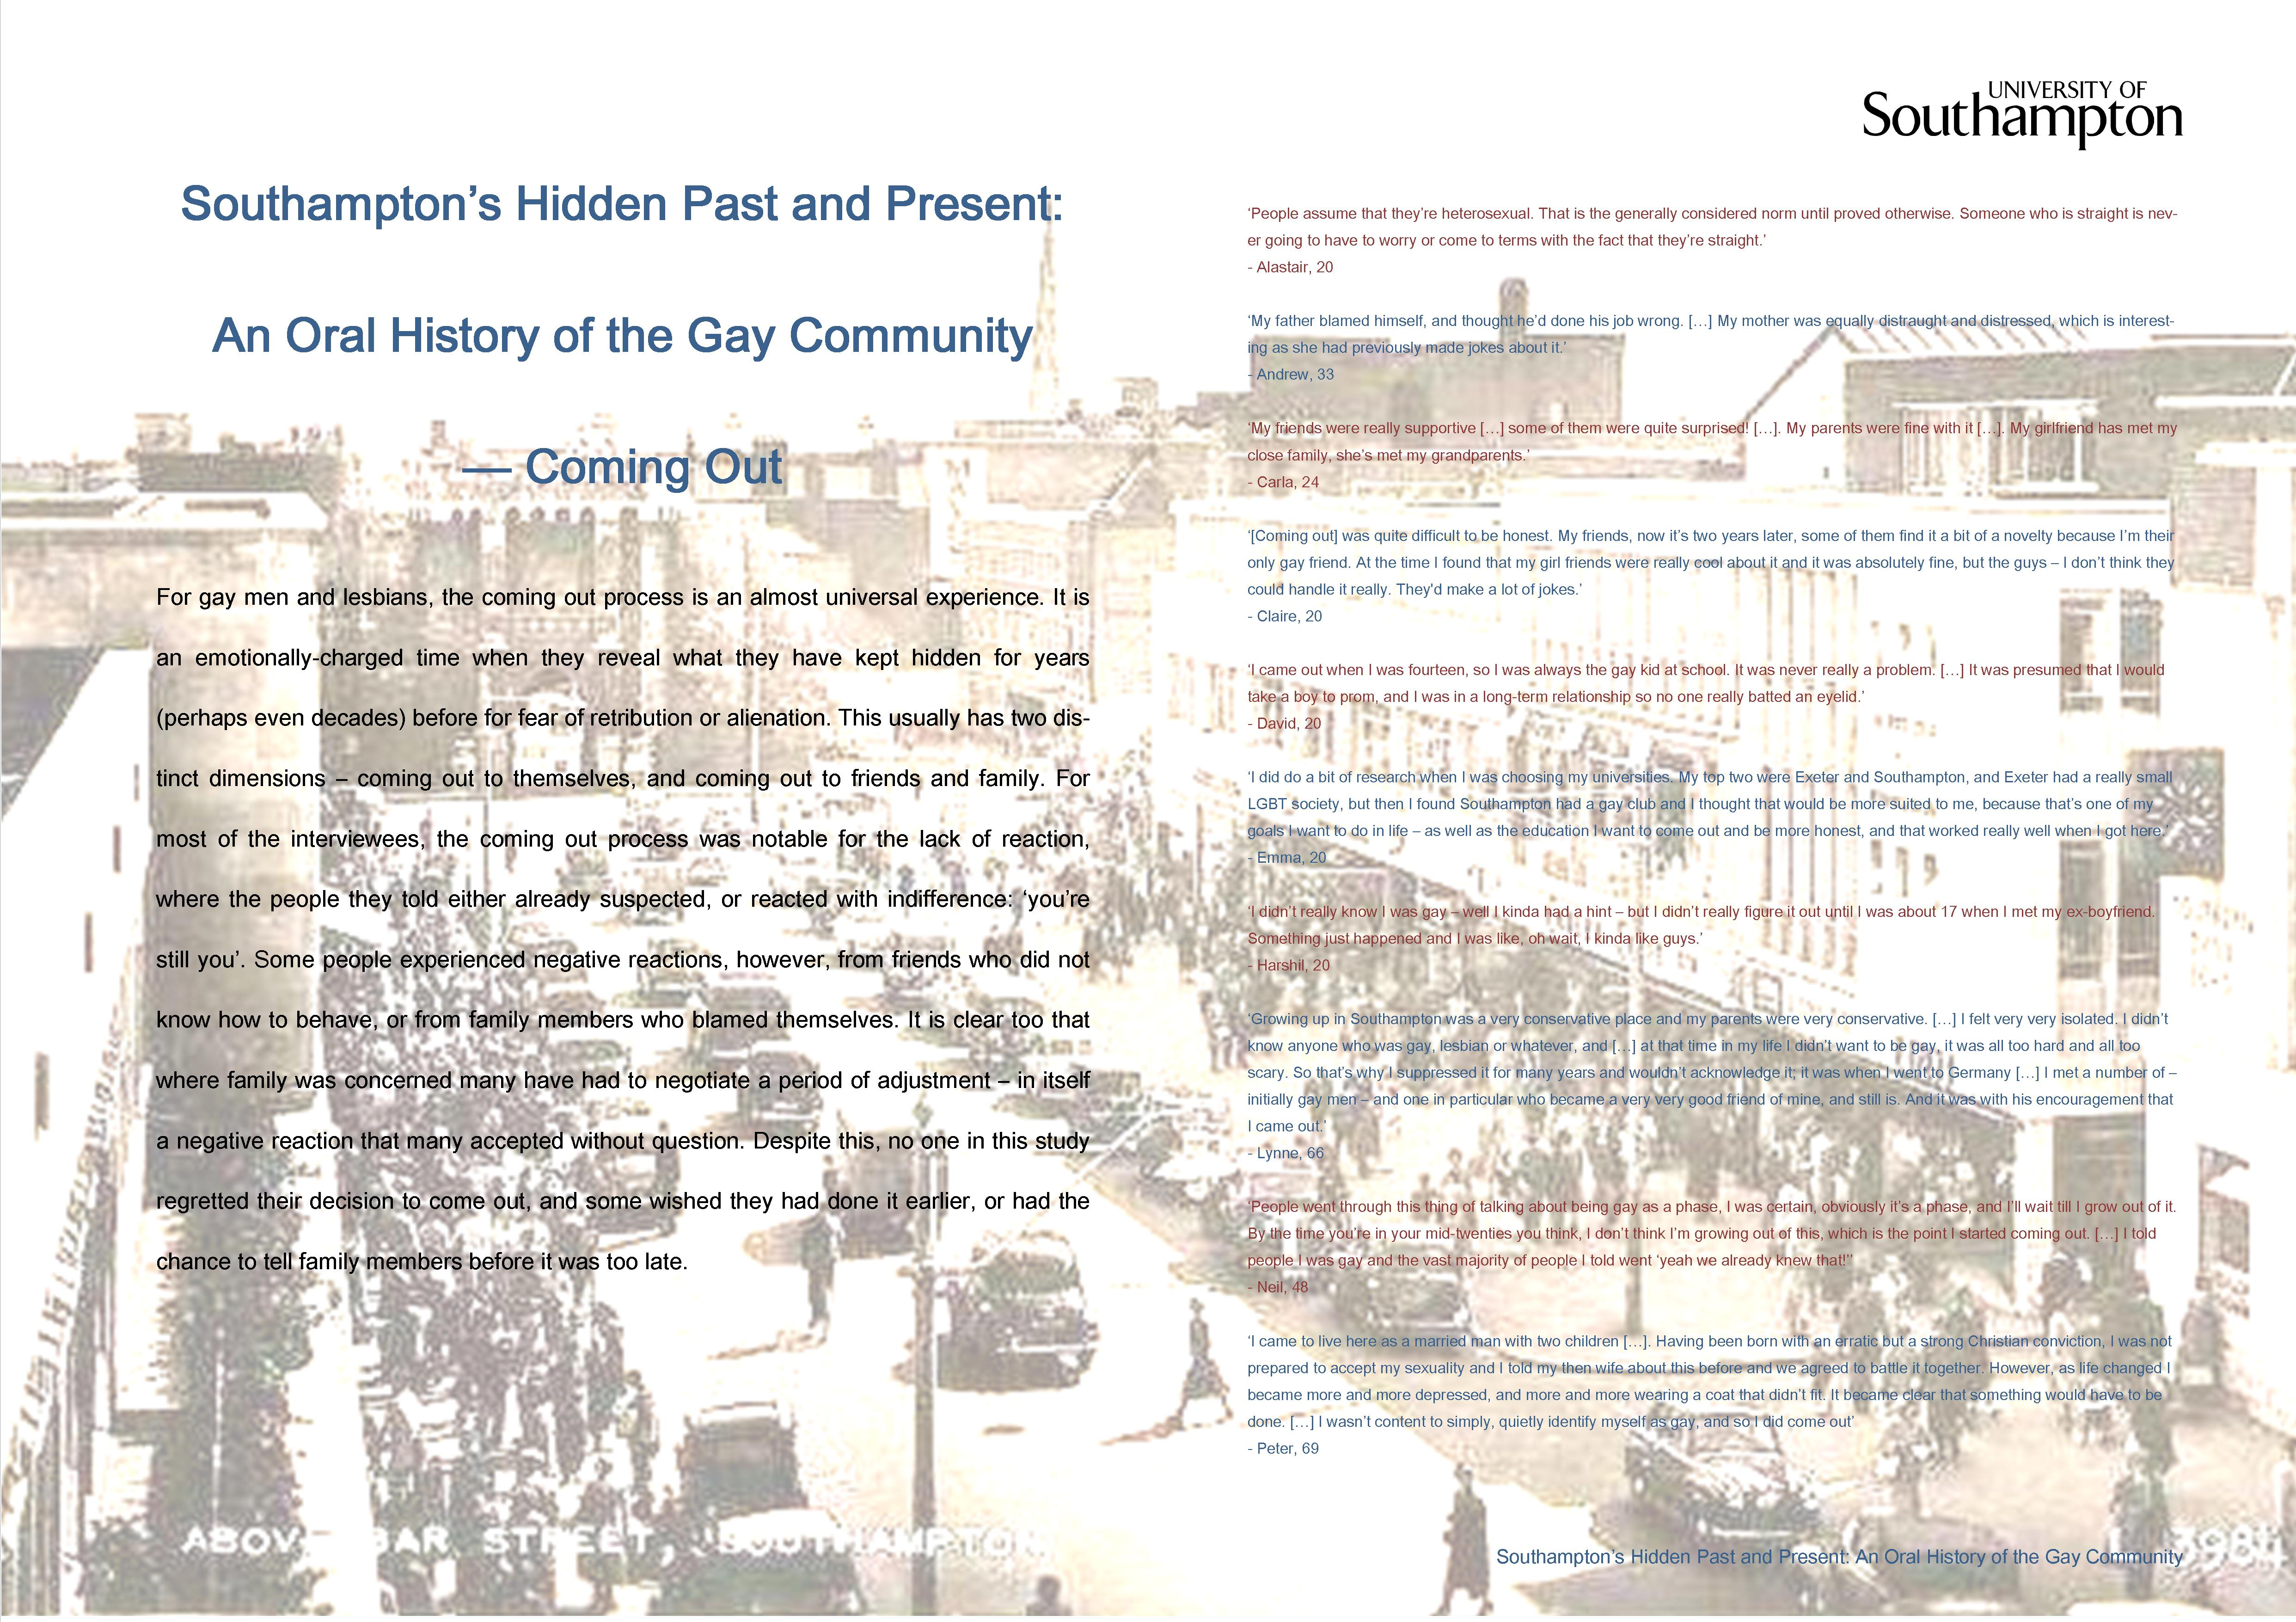 from Ismael history of gay community